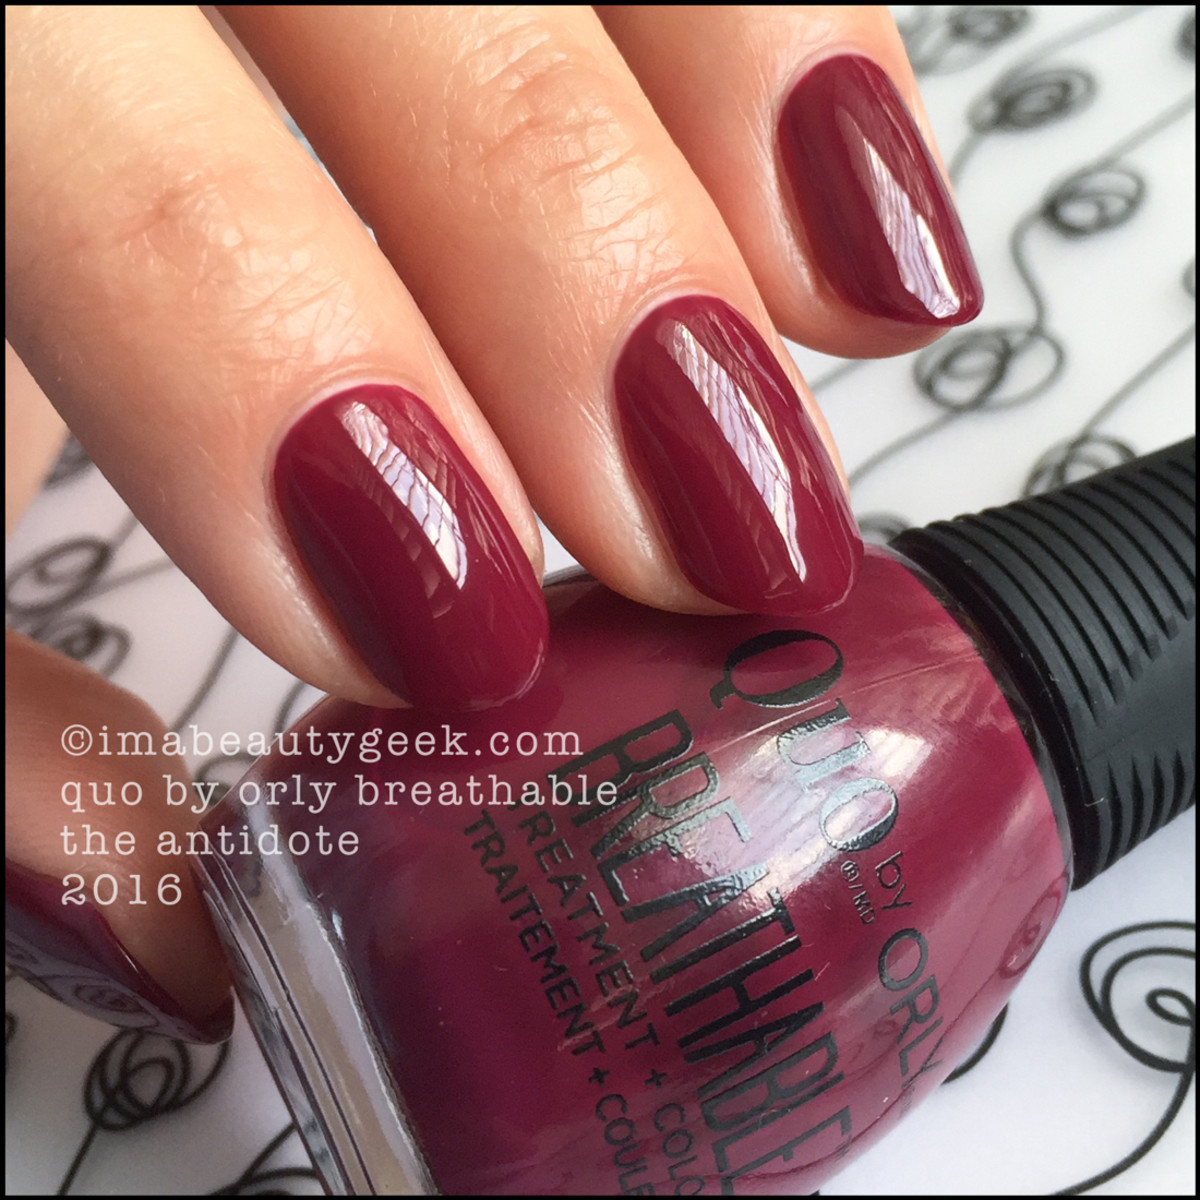 Orly Breathable Nail Polish_Quo by Orly Breathable The Antidote